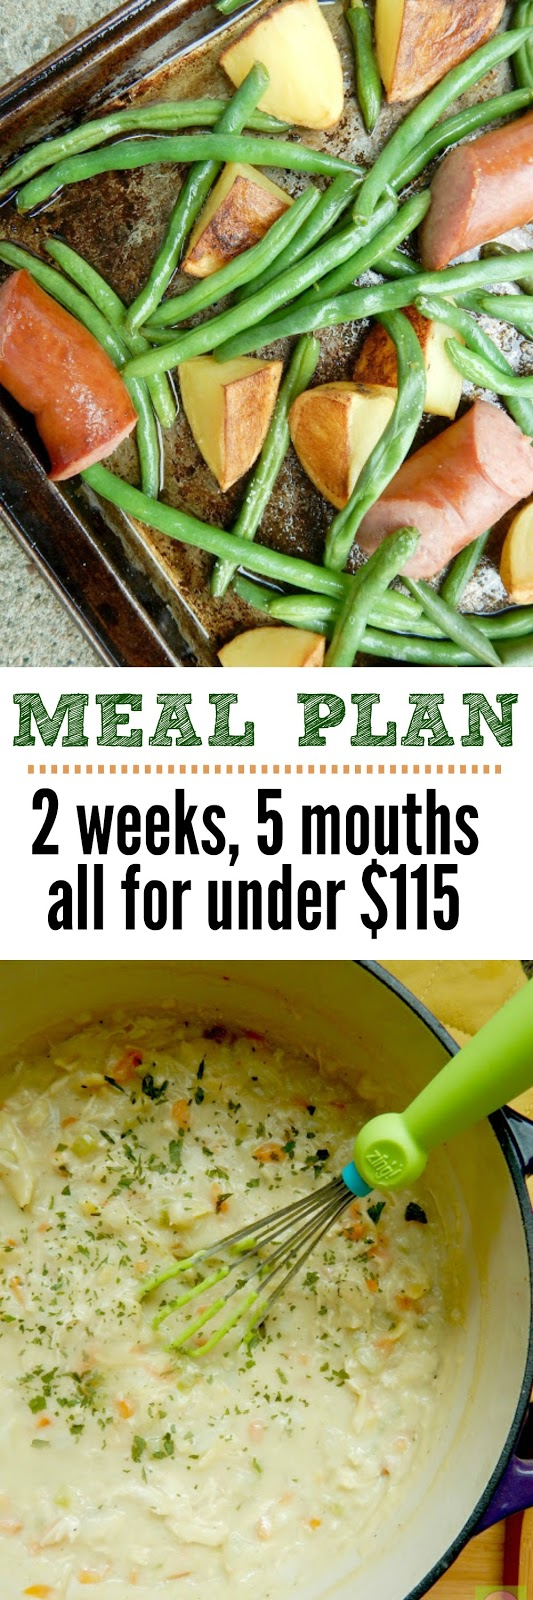 meal plan: 2 weeks, 5 mouths, all for under $115 #sweetsavoryeats